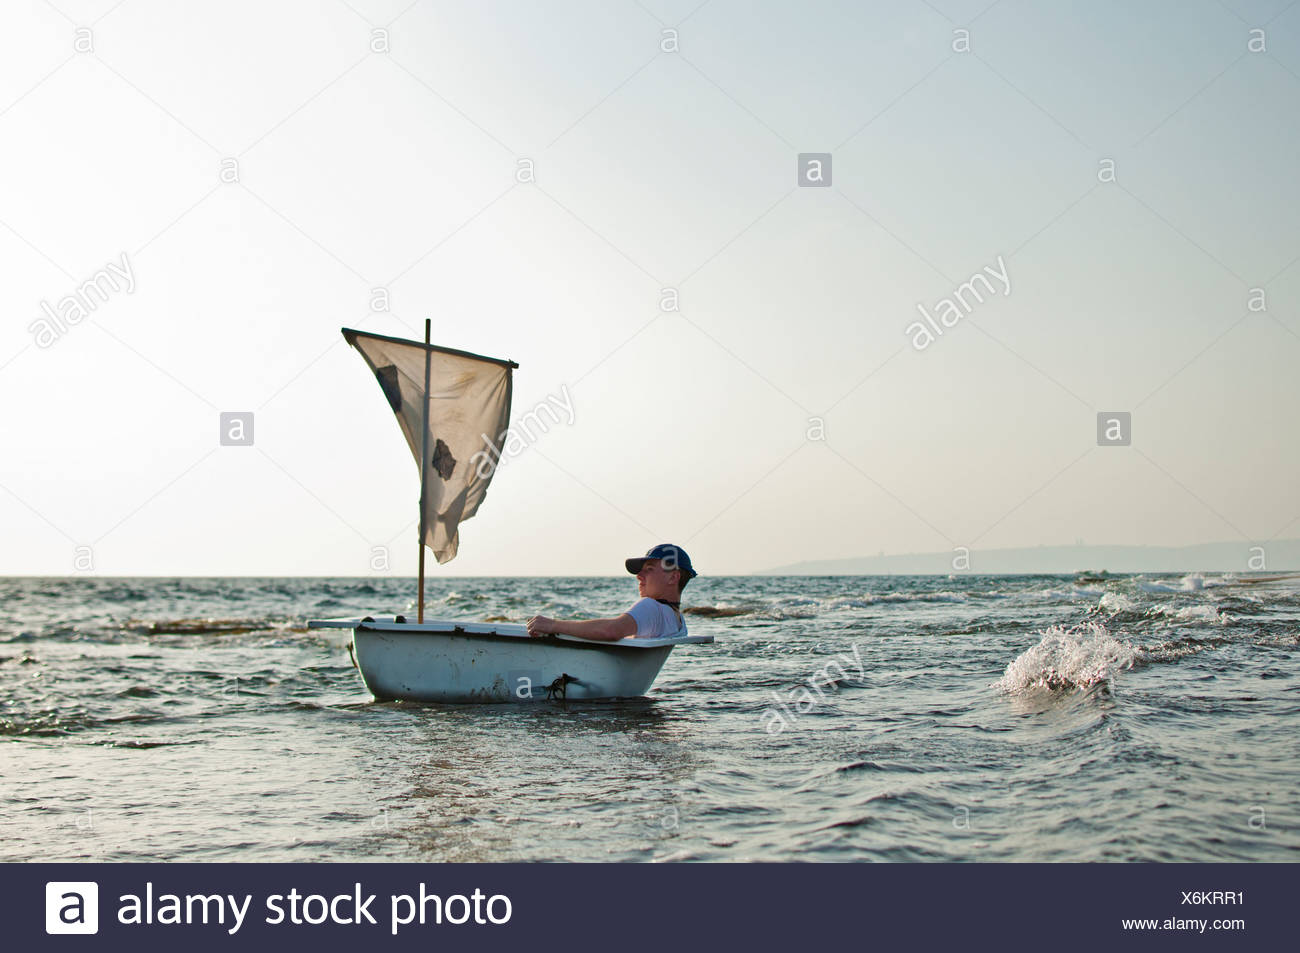 Man in a bathtub like boat with a sail in the sea - Stock Image